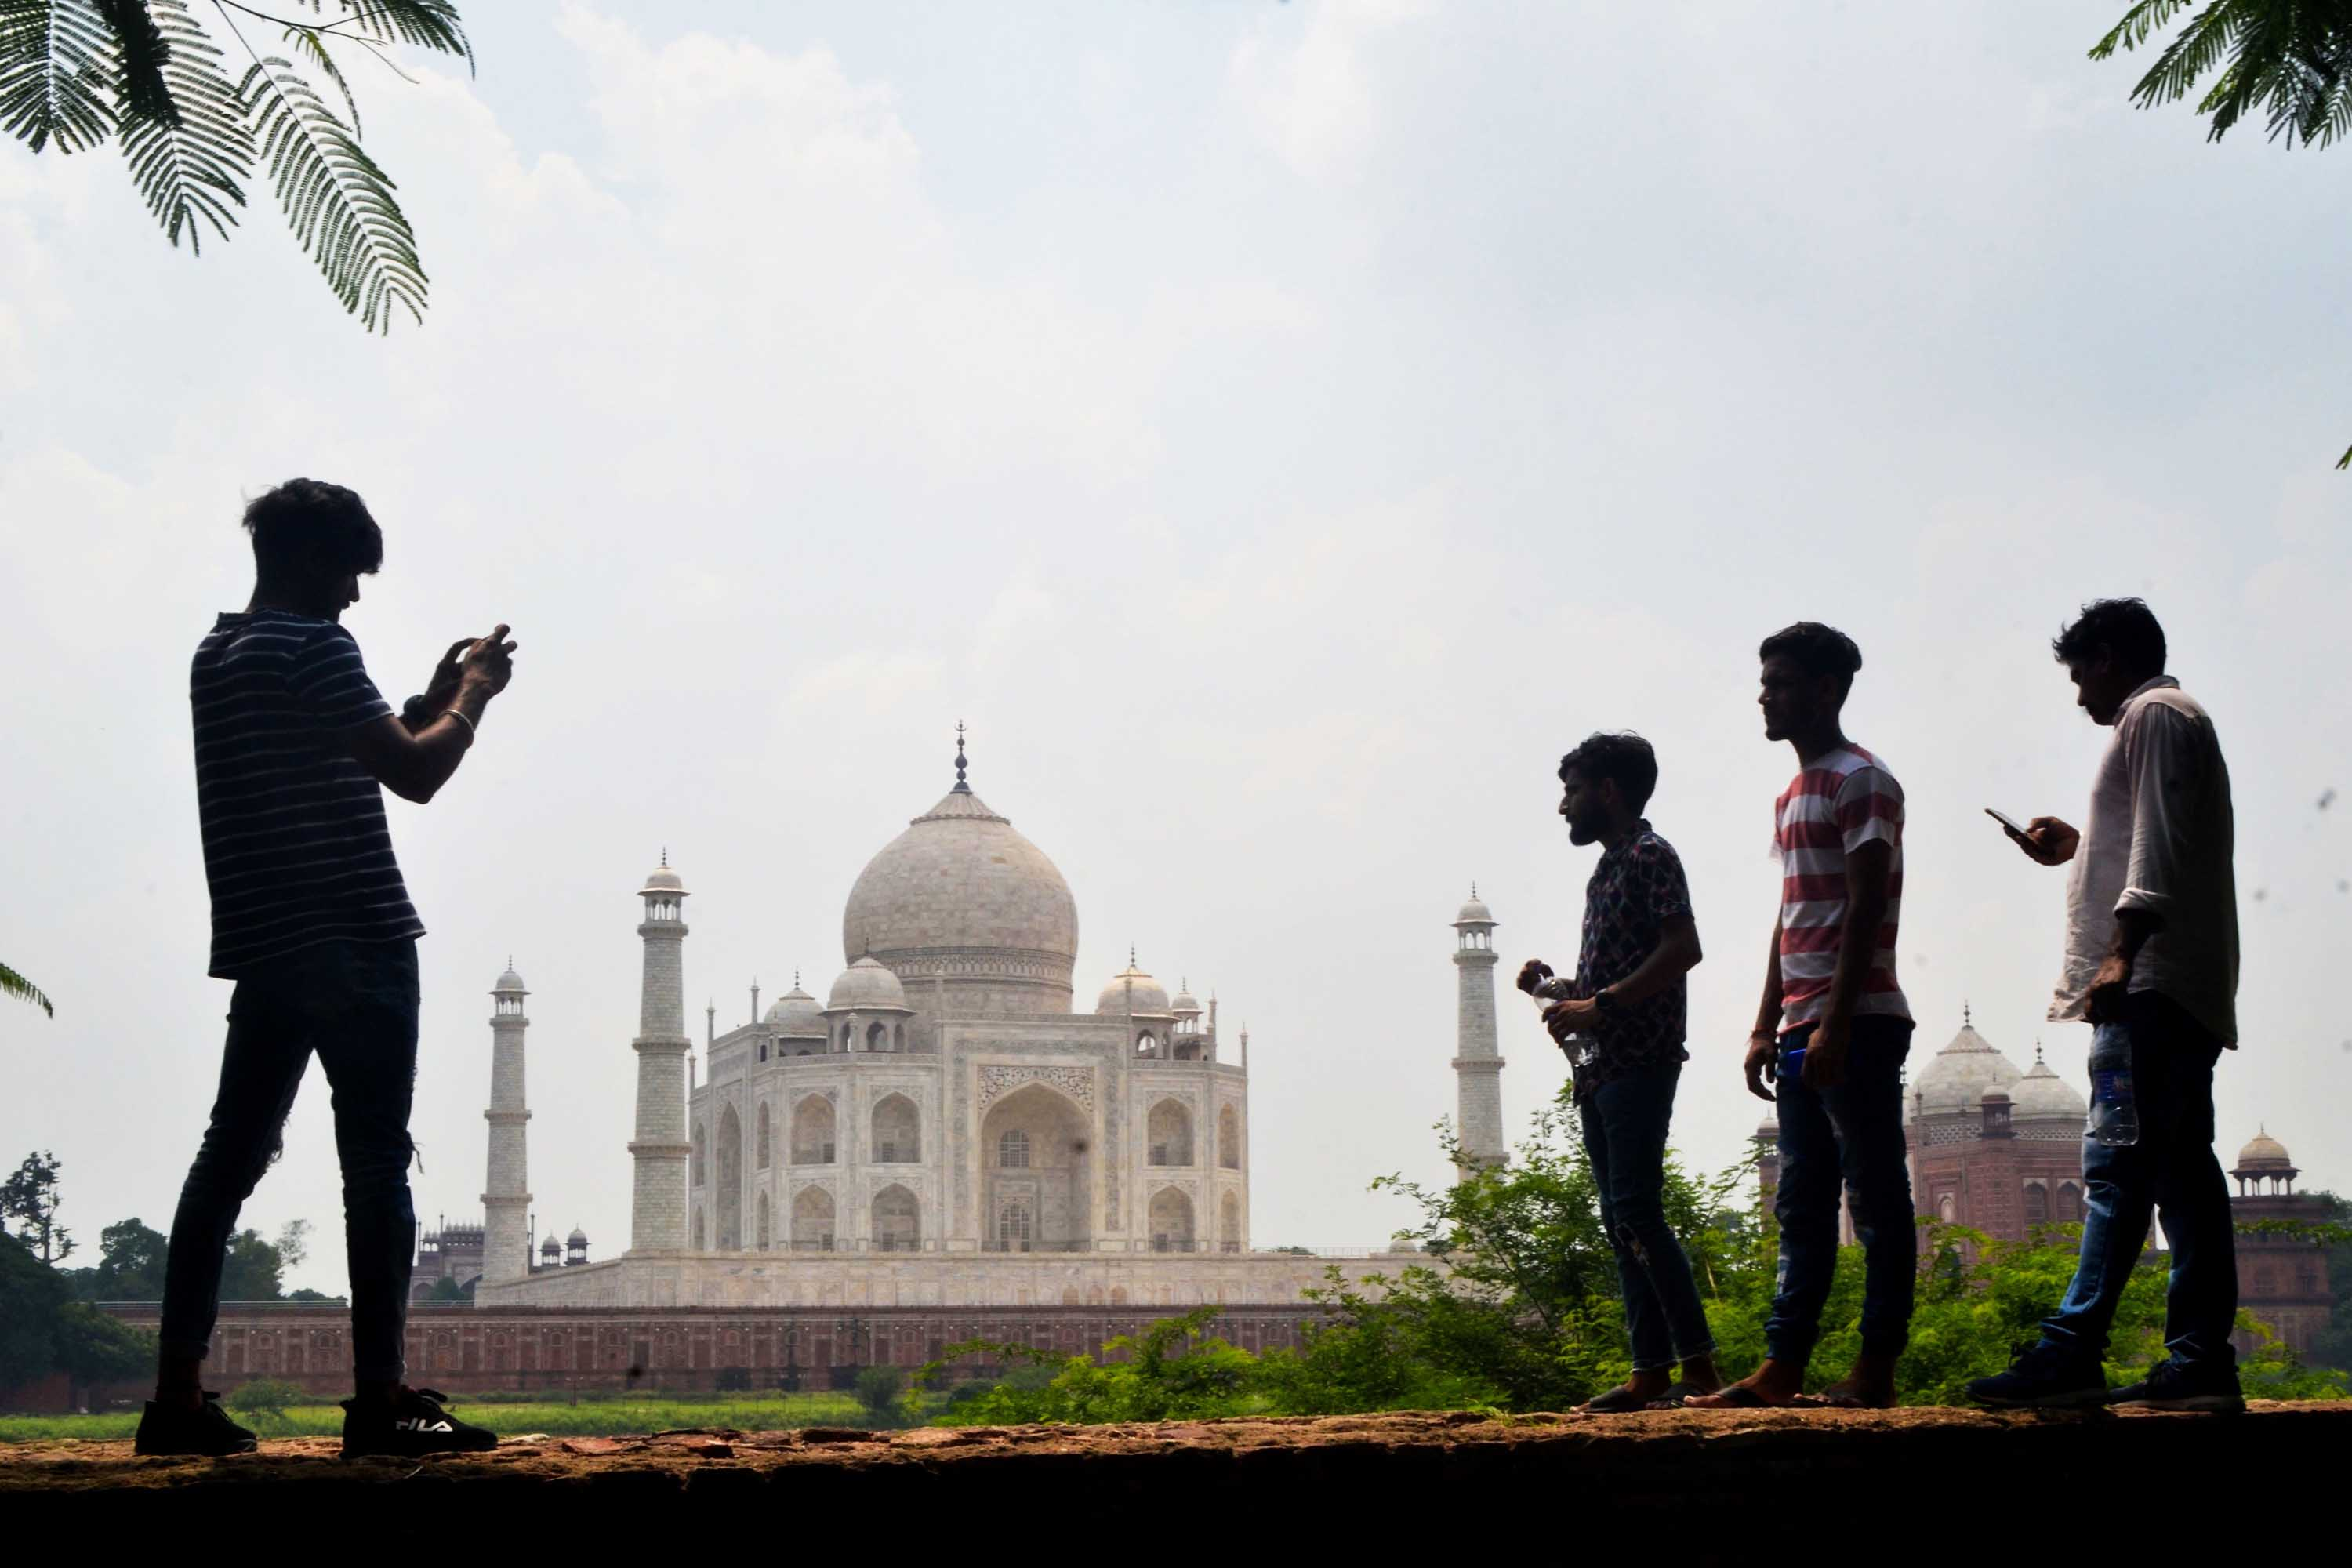 People take pictures near the Taj Mahal in Agra, India, on September 8, ahead of the landmark's reopening.